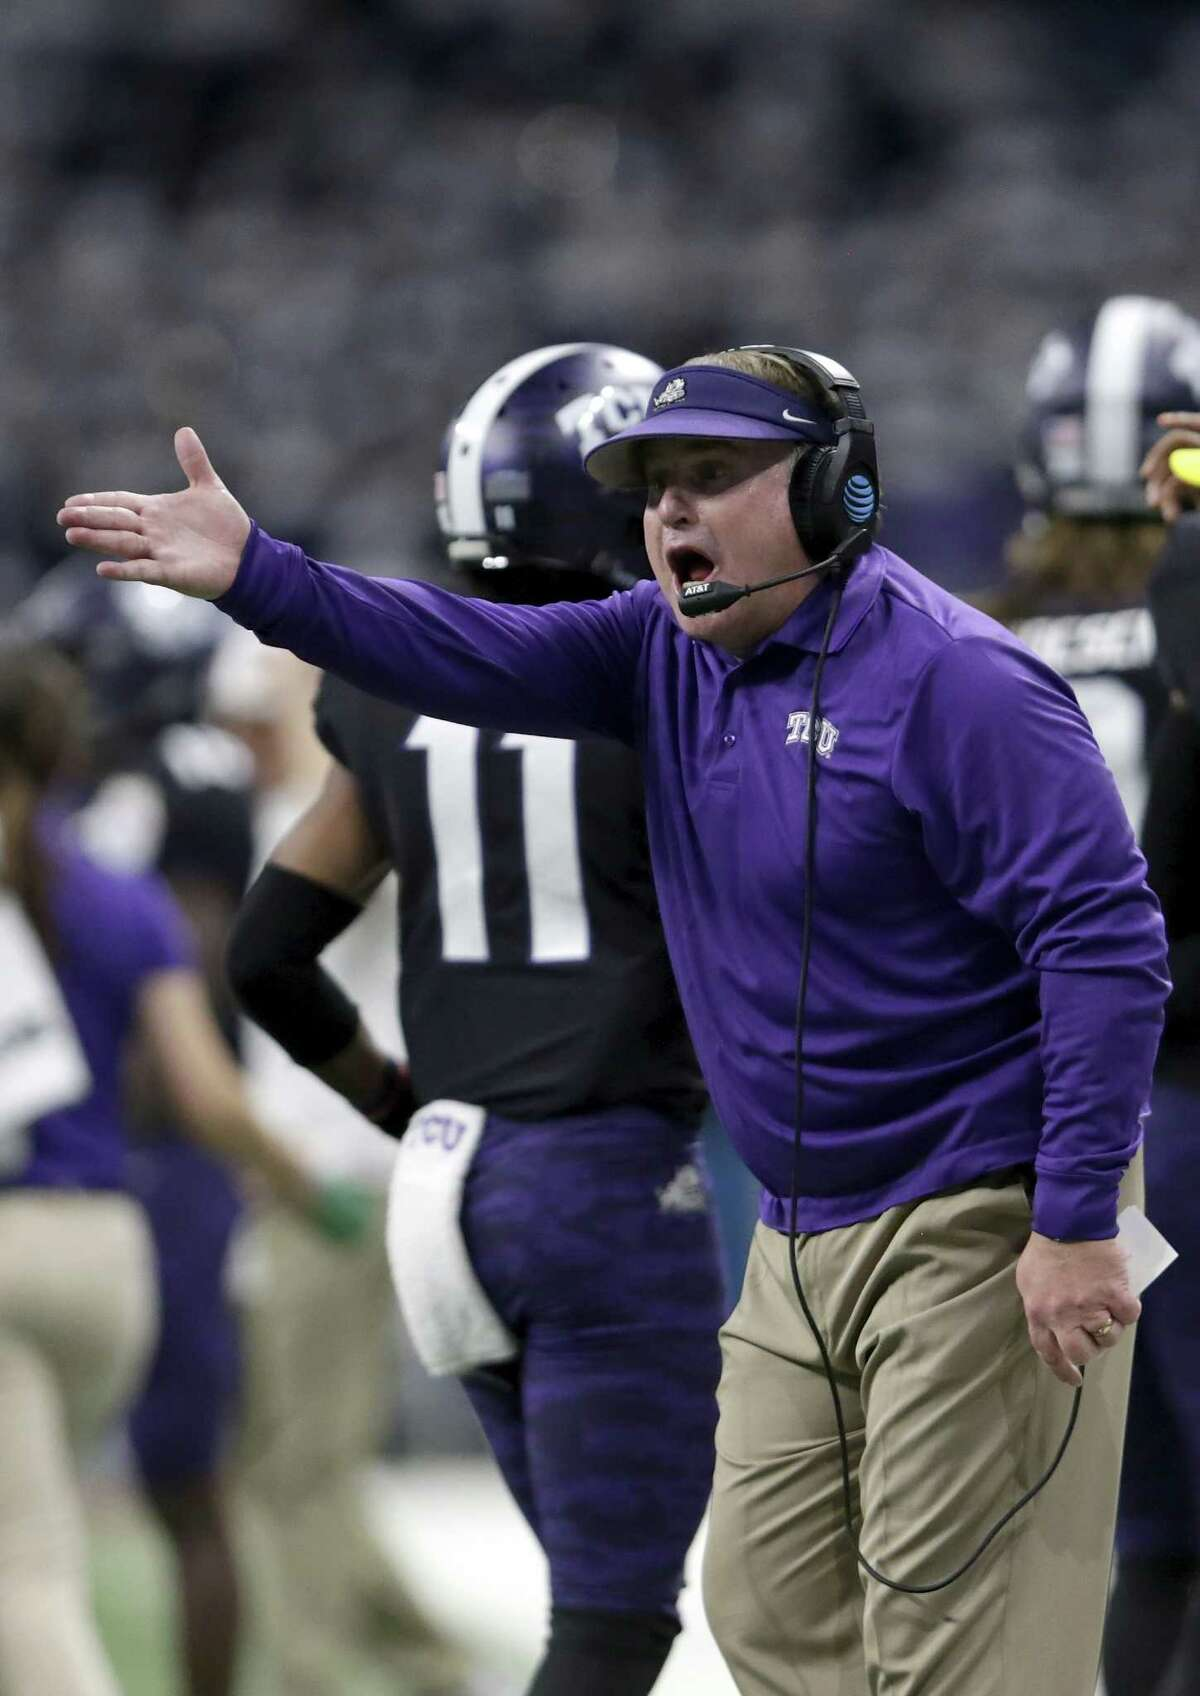 SAN ANTONIO, TX - DECEMBER 28: Head coach Gary Patterson of the TCU Horned Frogs reacts on the sideline in the second quarter against the Stanford Cardinal during the Valero Alamo Bowl at the Alamodome on December 28, 2017 in San Antonio, Texas.